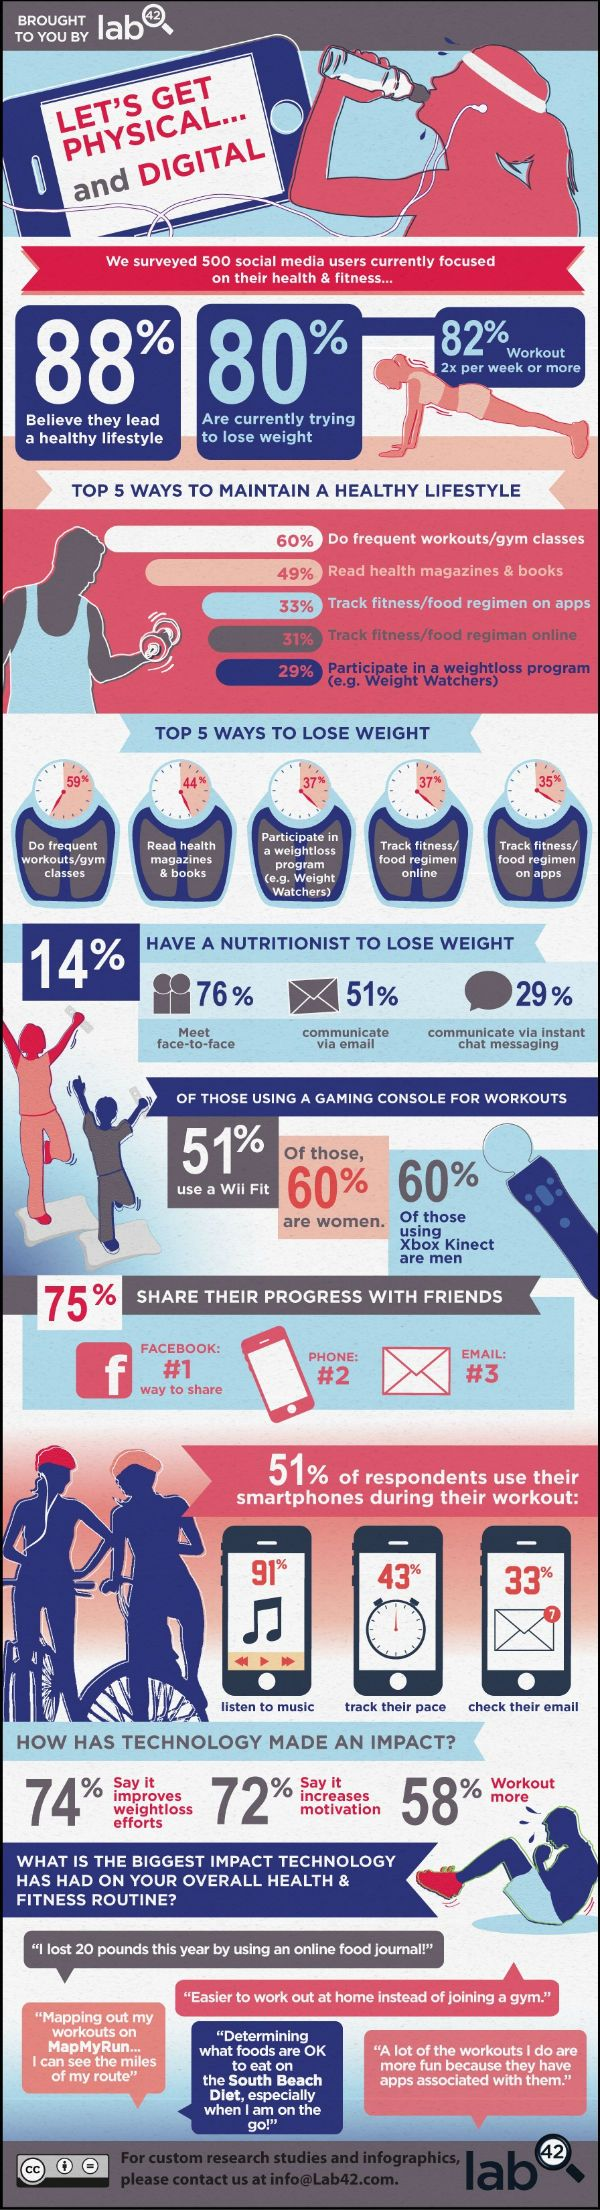 51% use their smartphones while working out, and 75% of those share their results.